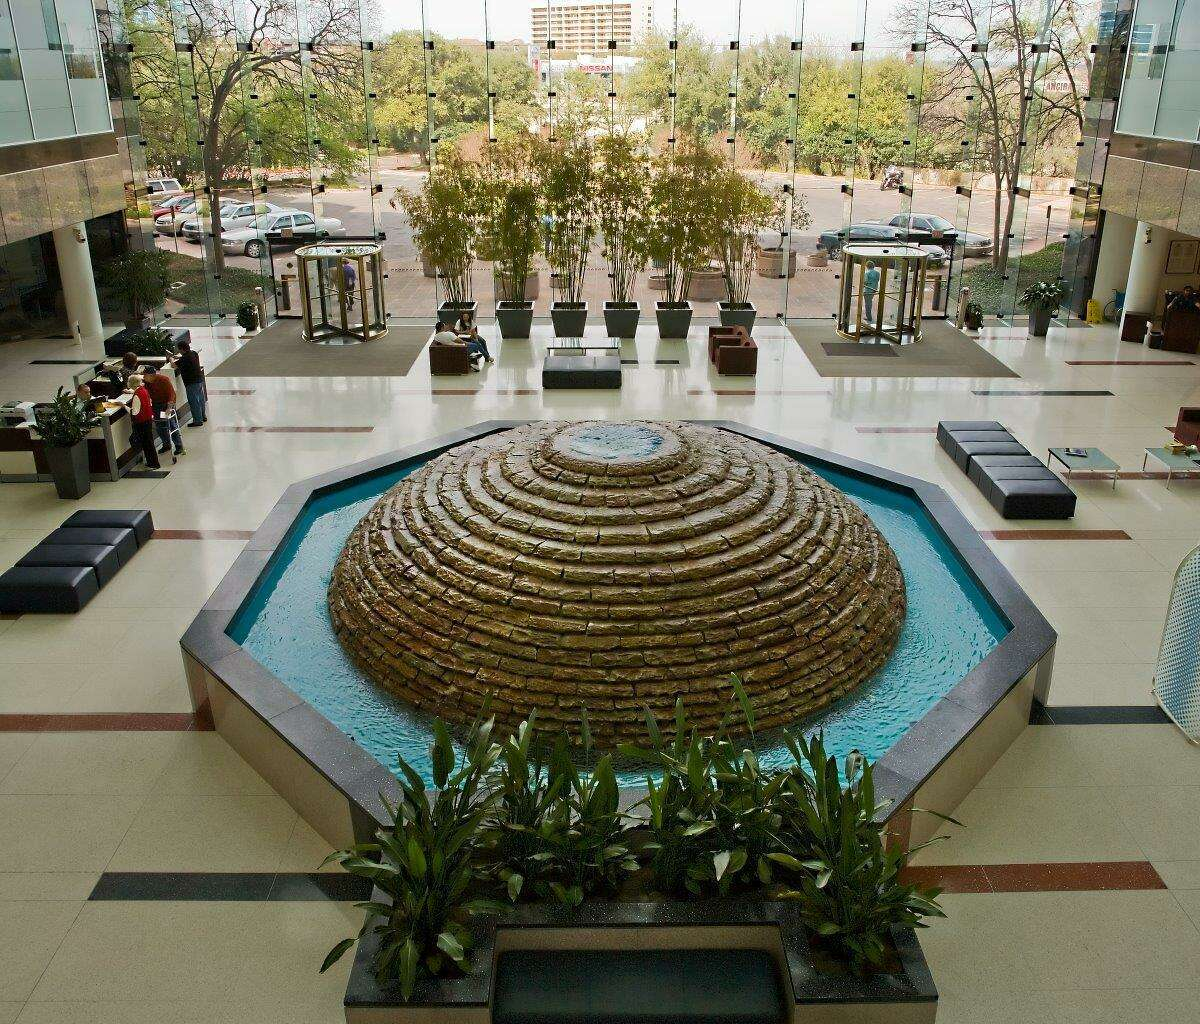 USAA Federal Savings Bank has confidentially settled a lawsuit over its overdraft charges. Pictured is the lobby of the bank's branch at USAA's San Antonio campus.